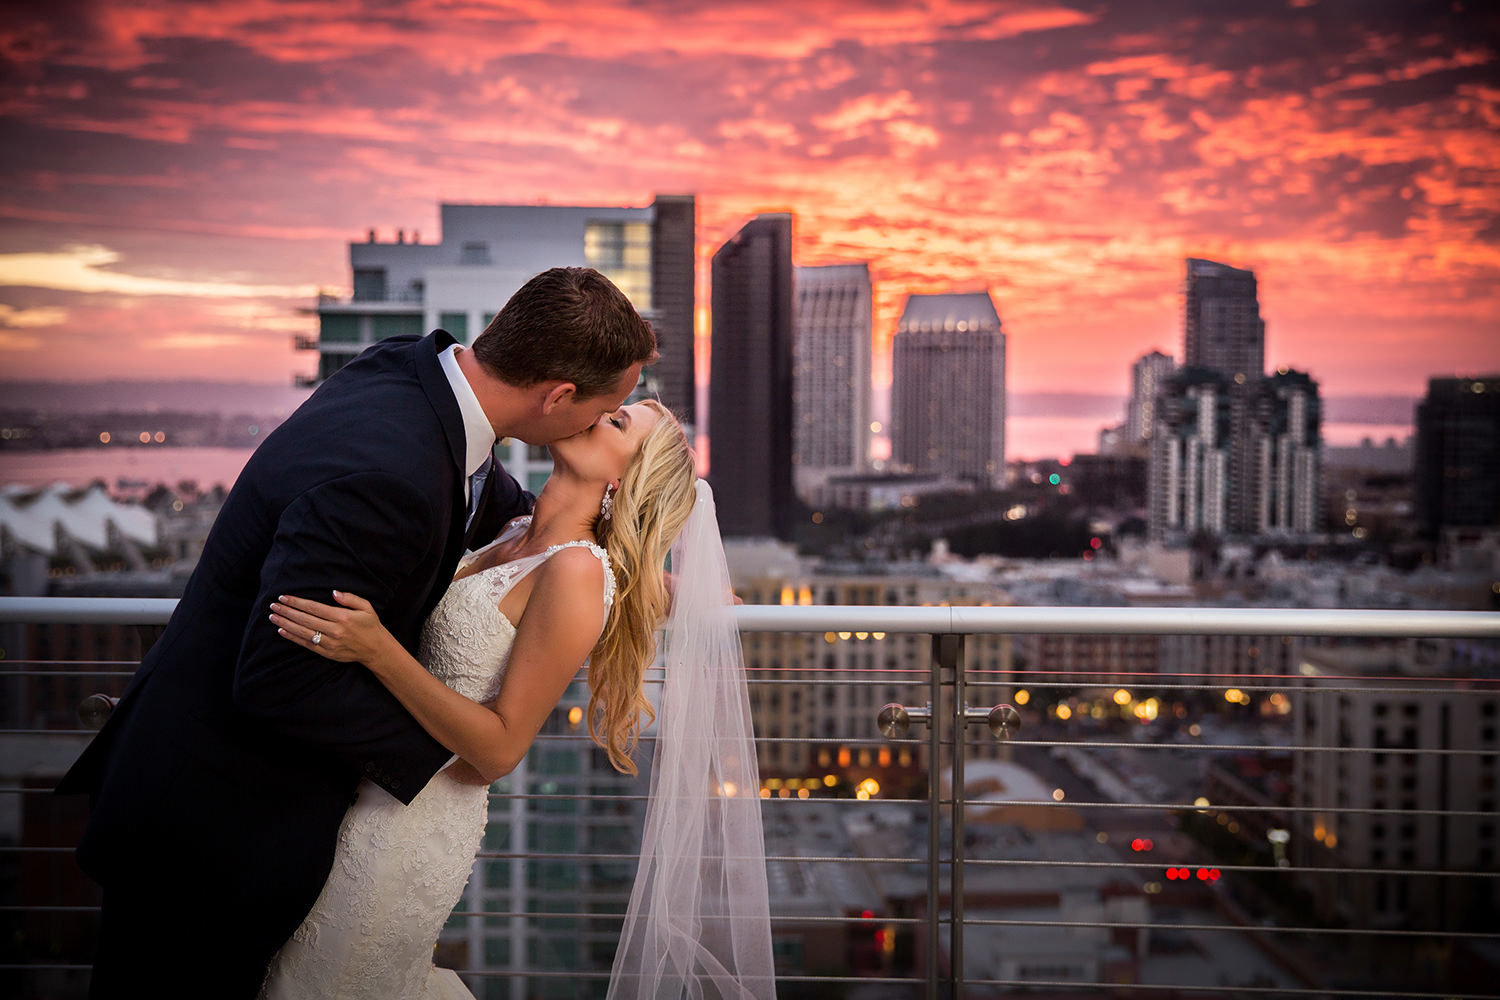 Bride and groom kiss with a surreal sunset over downtown San Diego